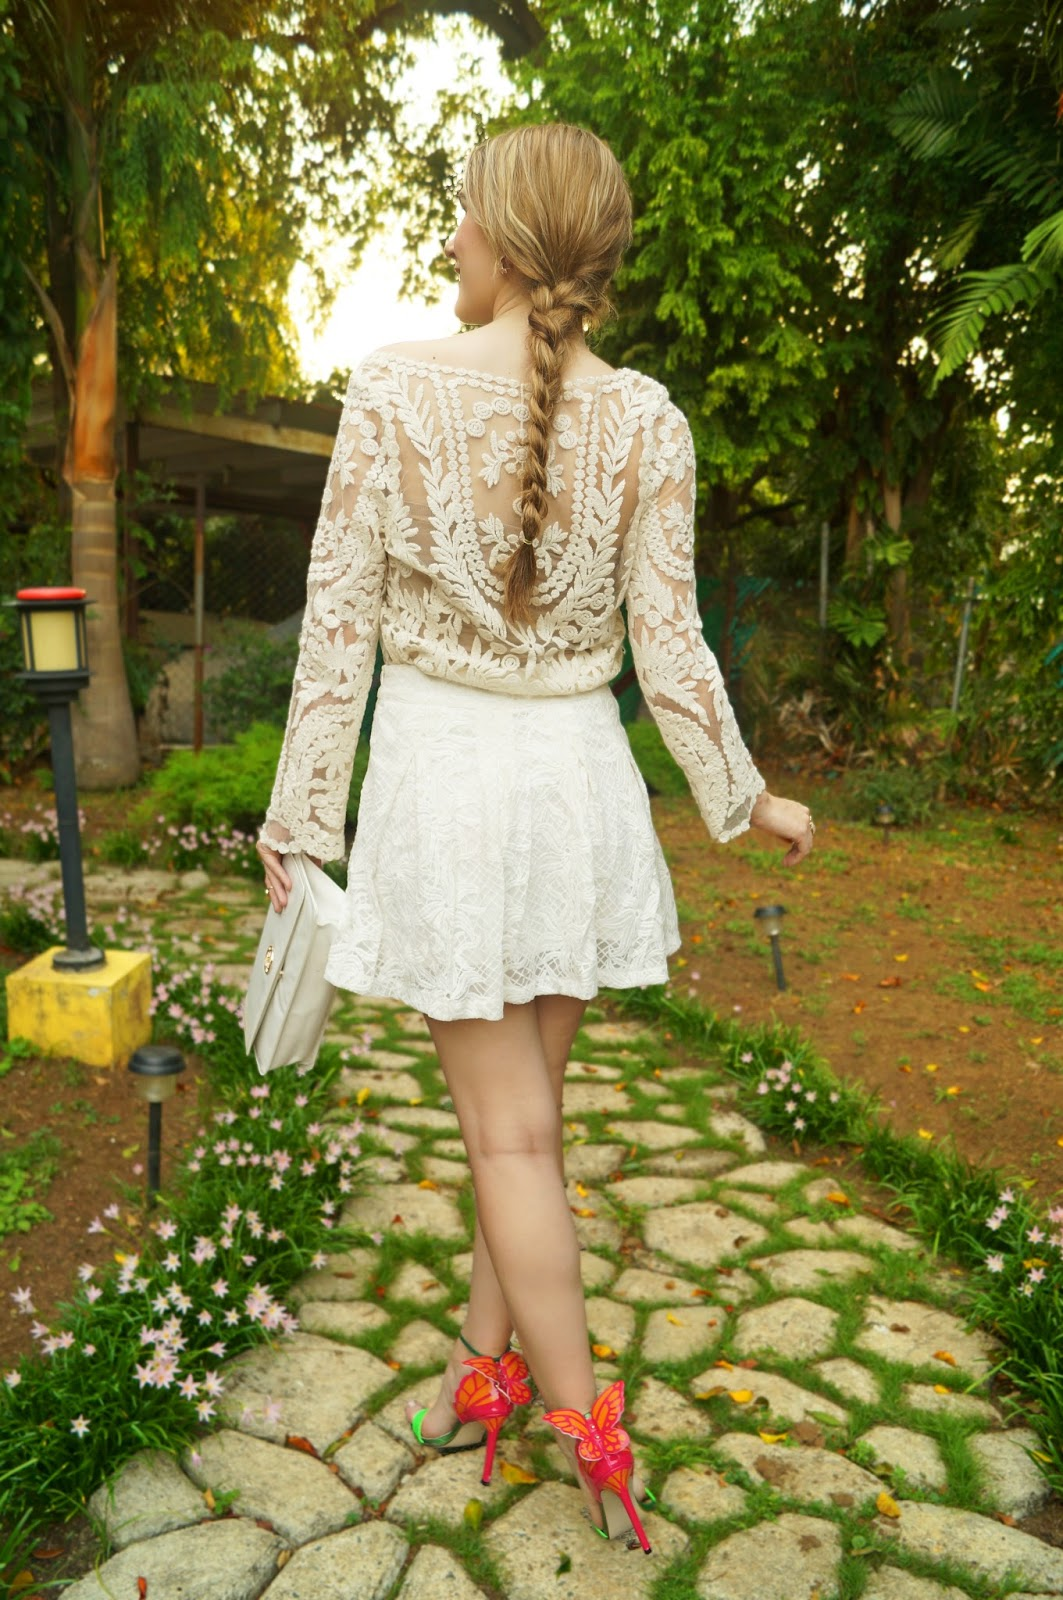 Lovely Spring Outfit in Lace